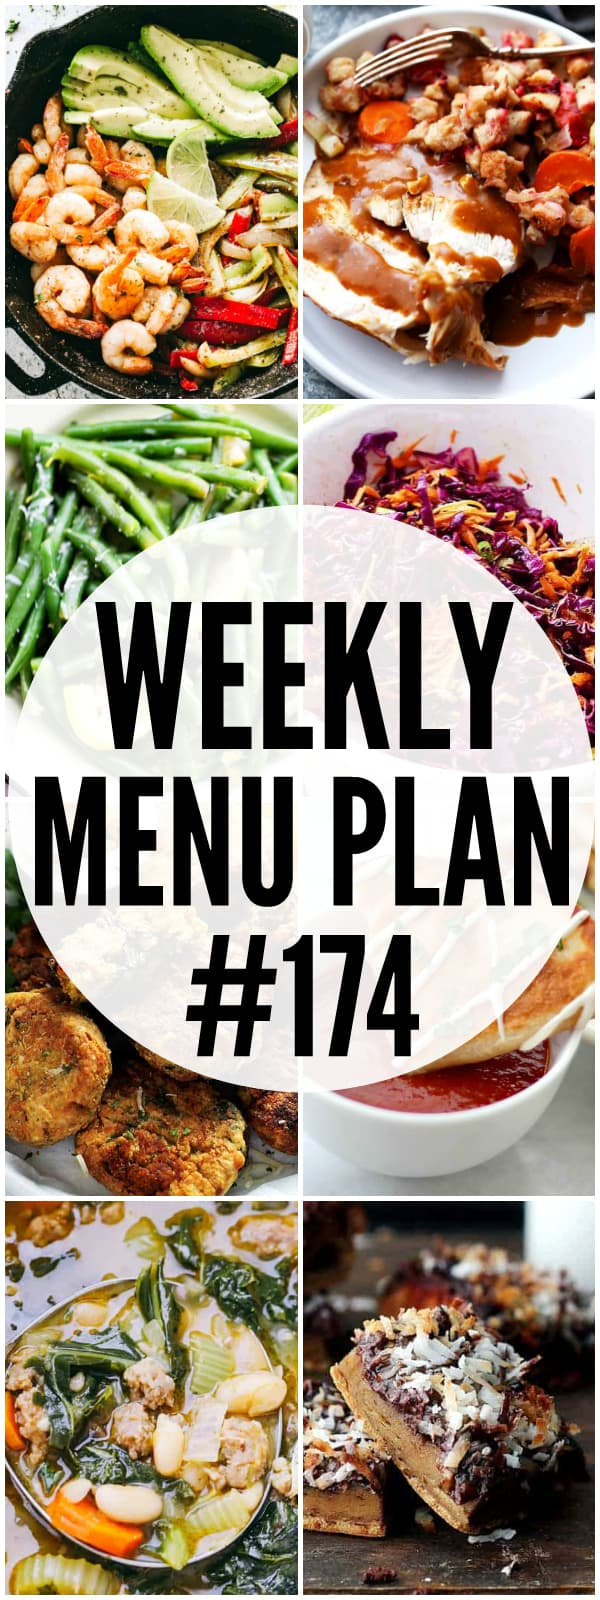 WEEKLY MENU PLAN (#174) - A delicious collection of dinner, side dish and dessert recipes to help you plan your weekly menu and make life easier for you!